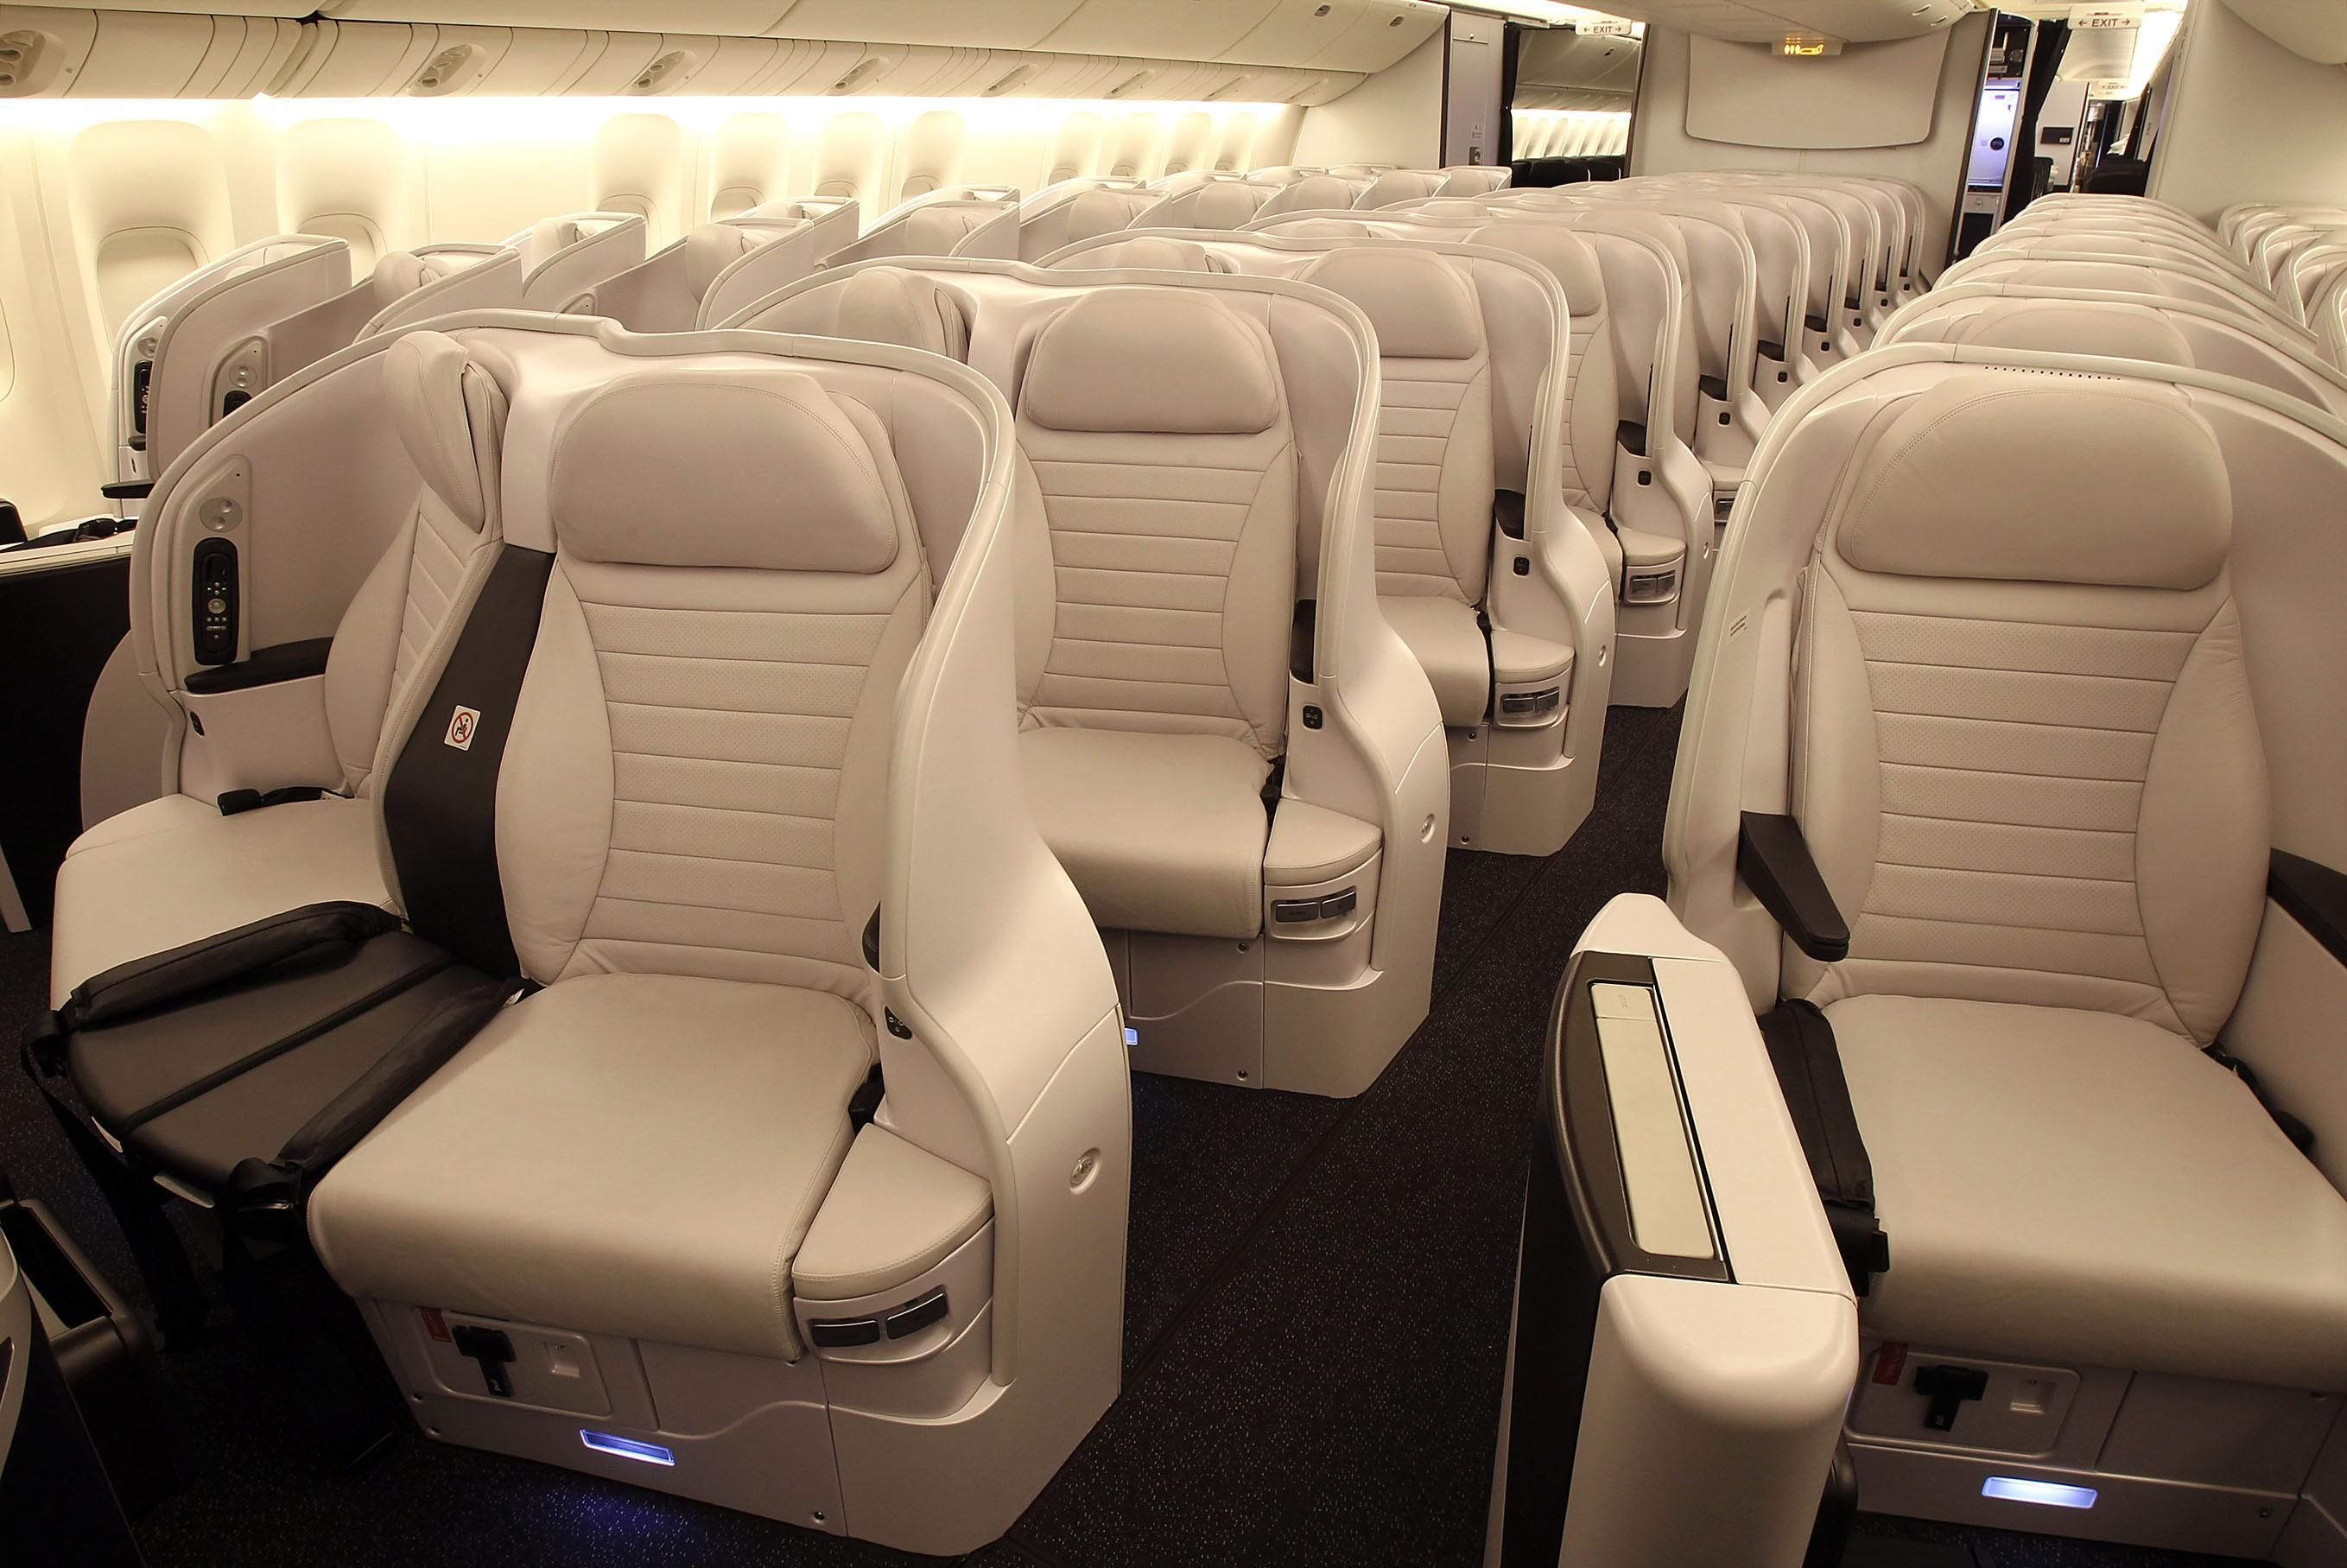 Air New Zealand Premium Economy Spaceseat Airplane Interior